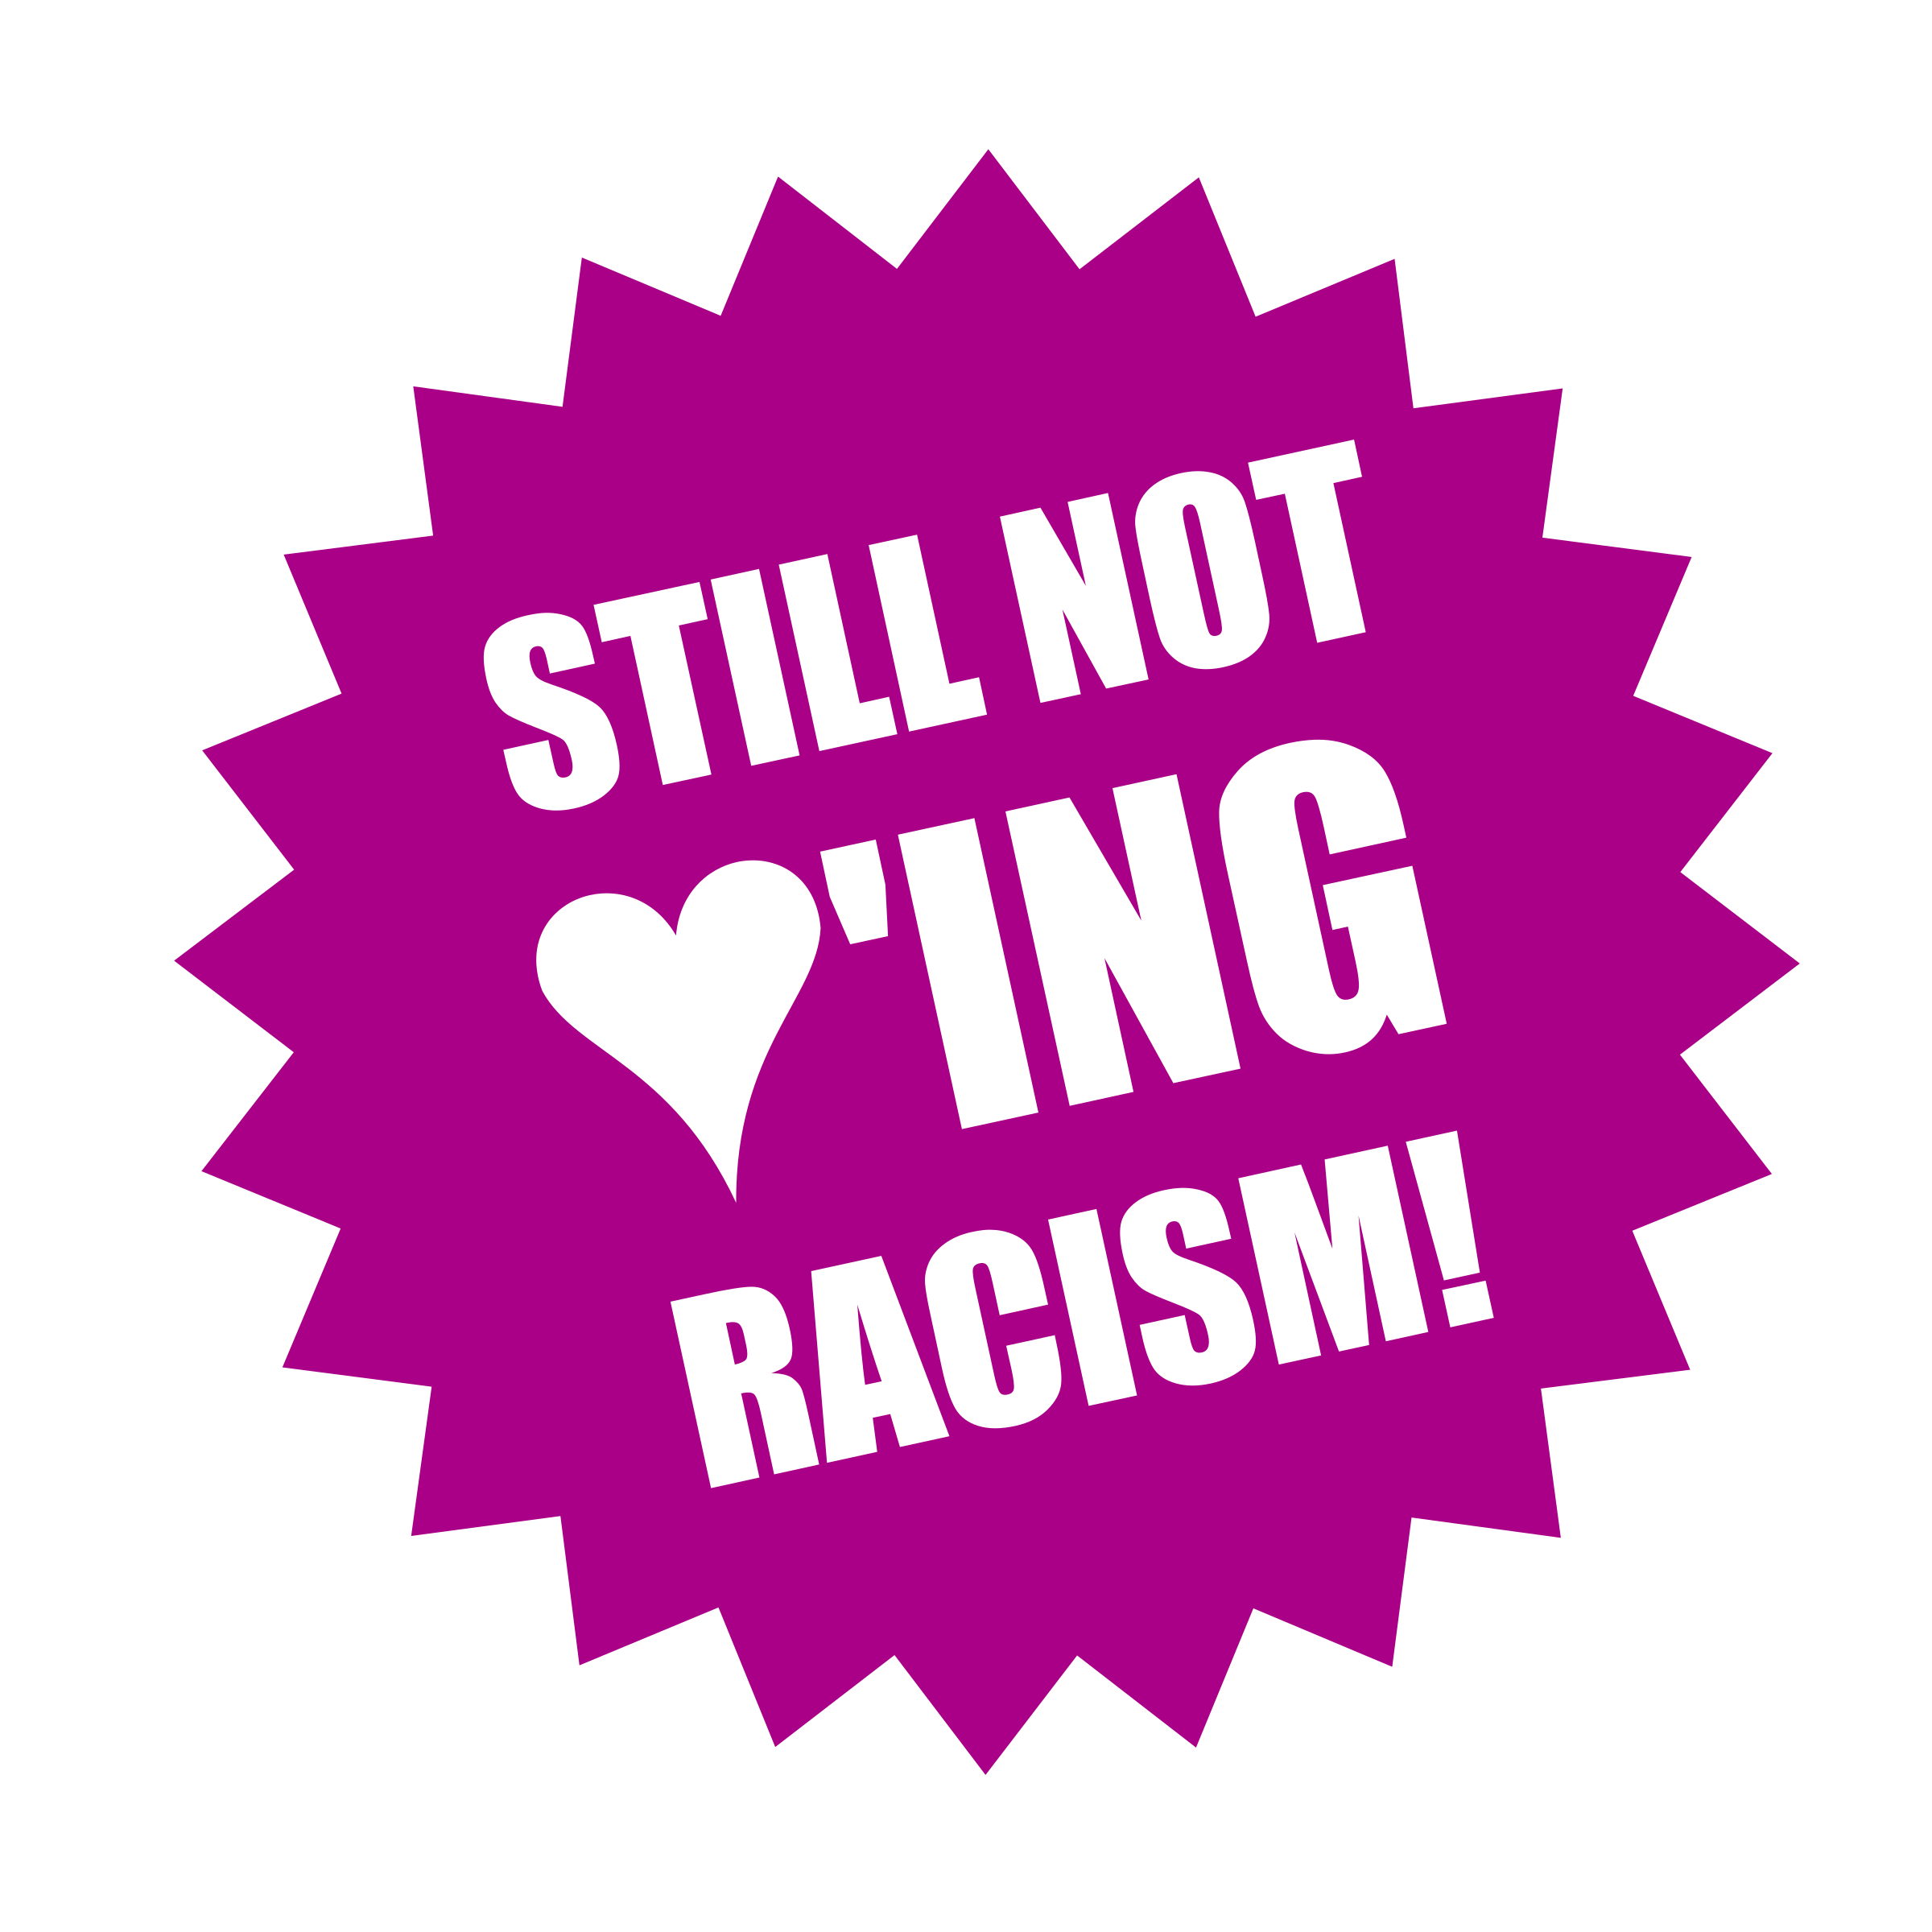 Still not loving Racism by worker